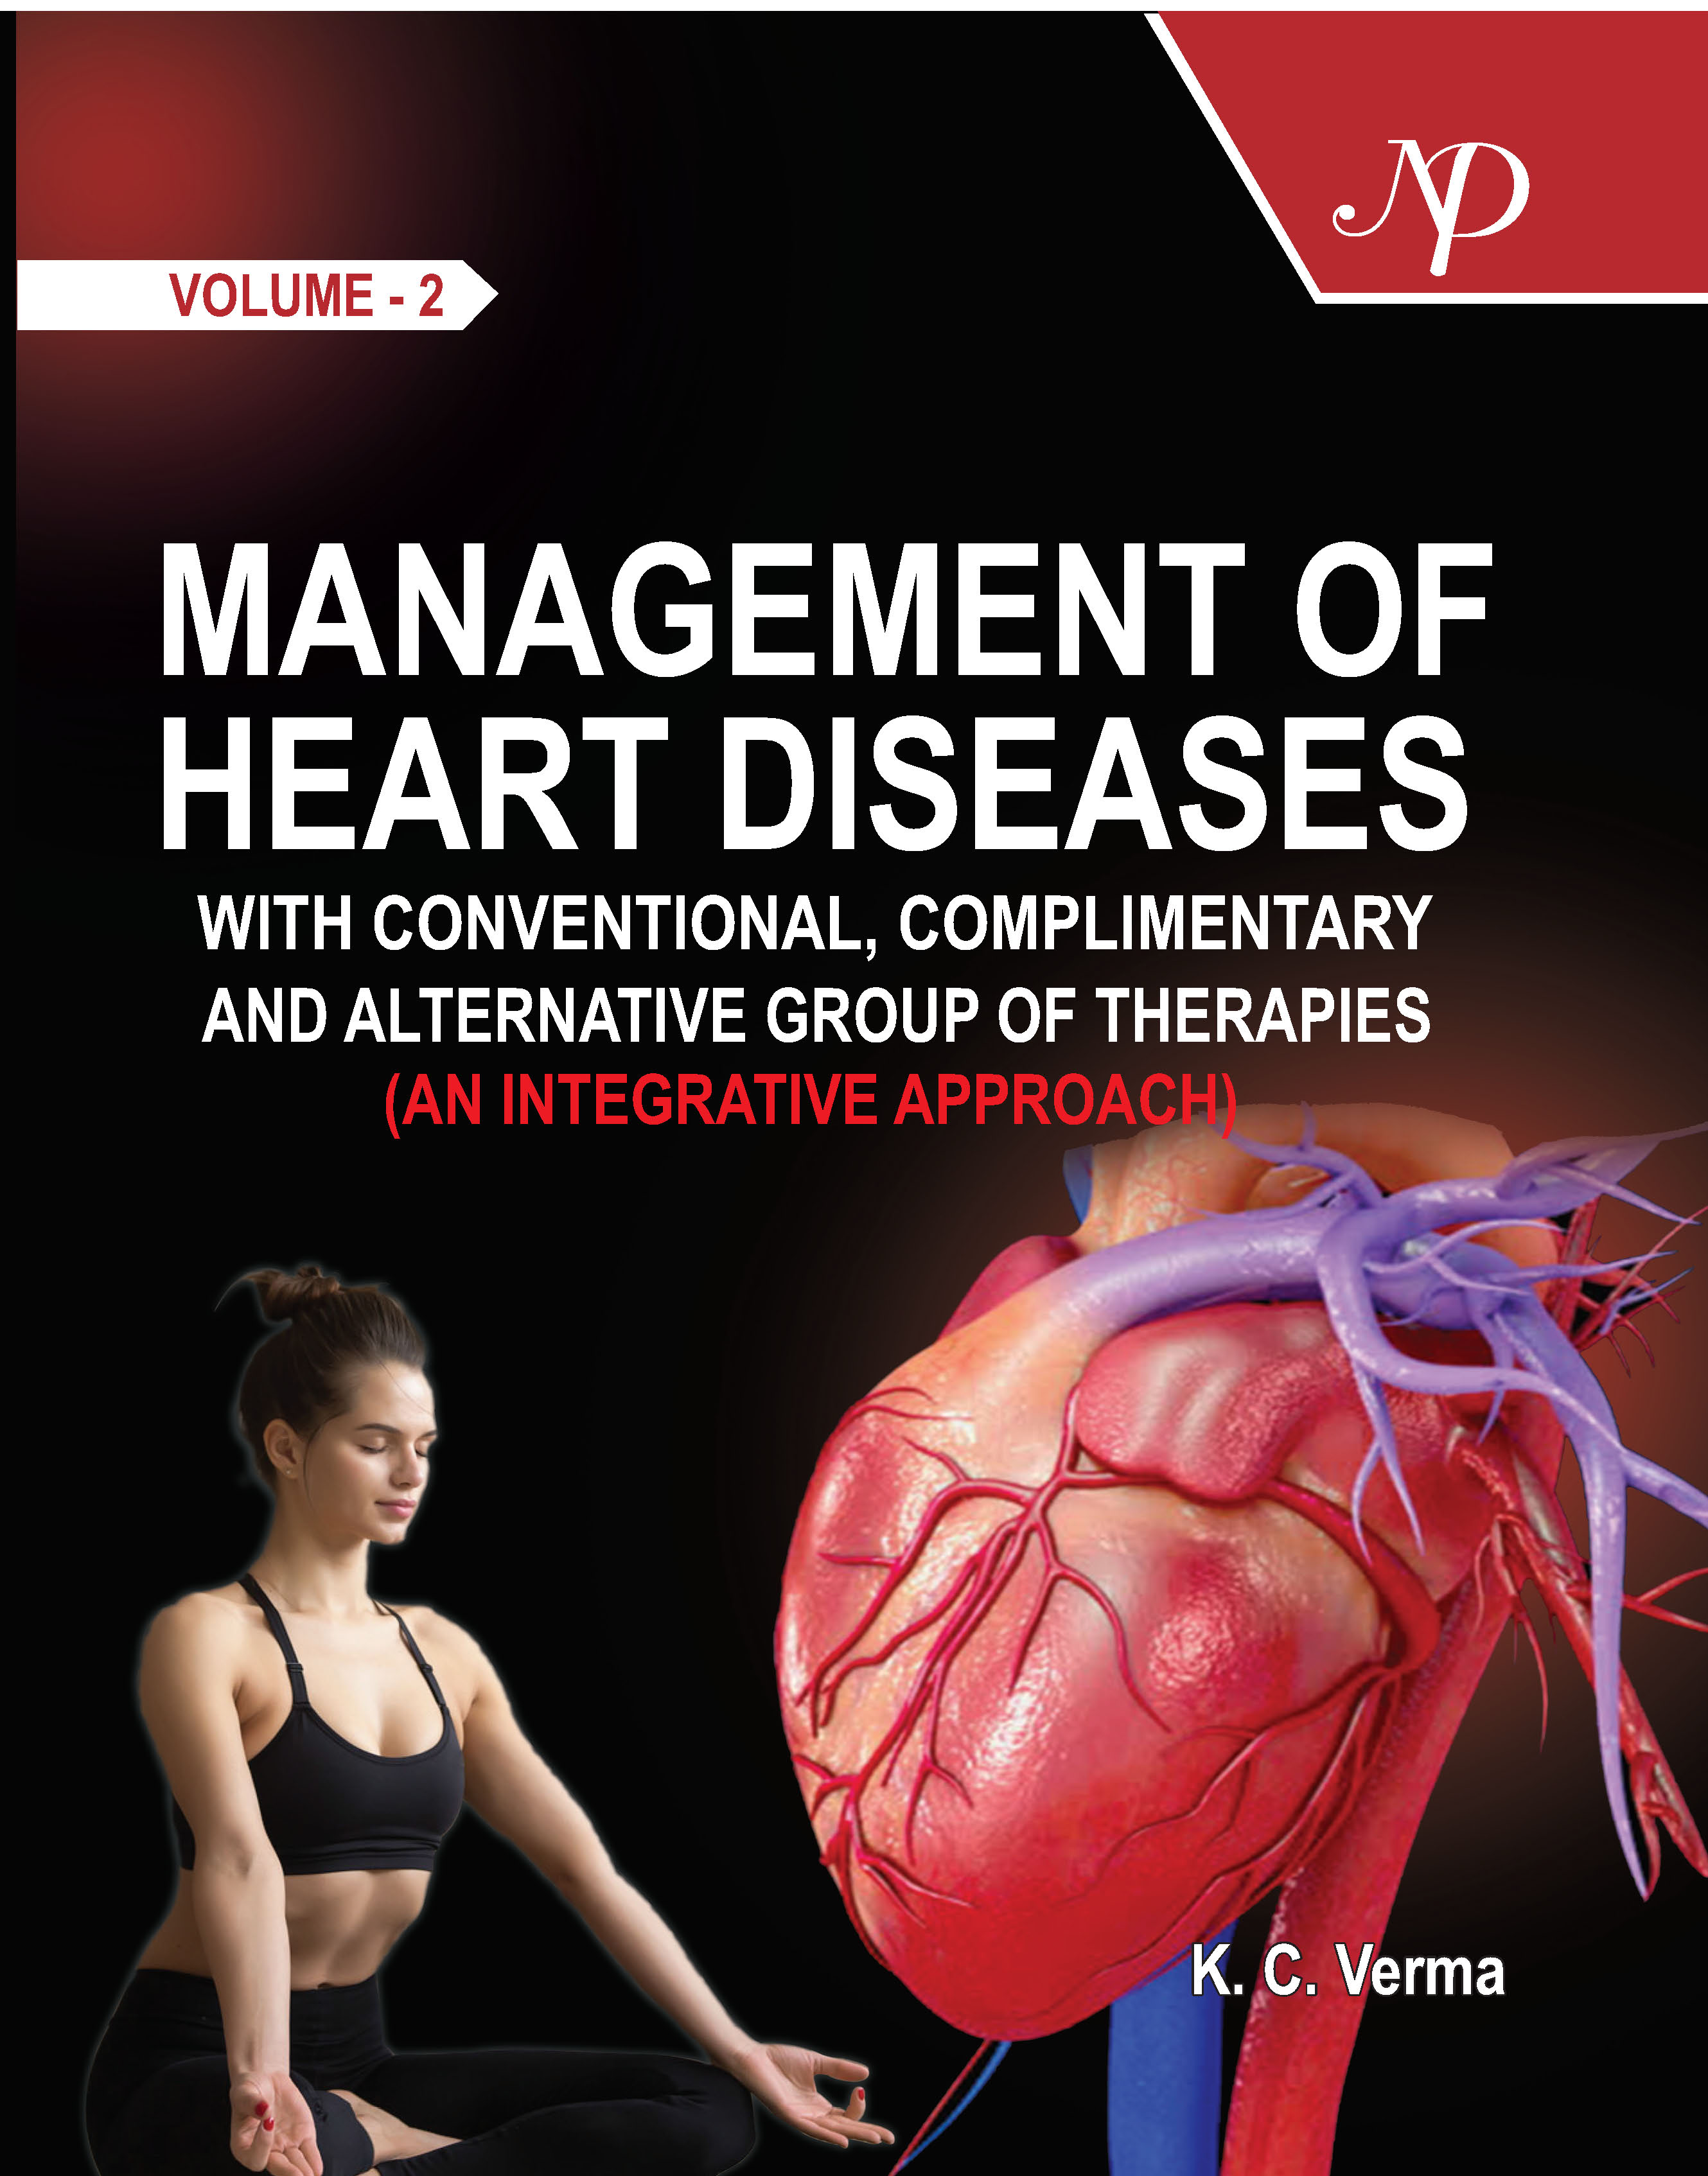 2 Cover Management of Heart Diseases with Conventional, Complimentary and Alternative Group of Therapies.jpg